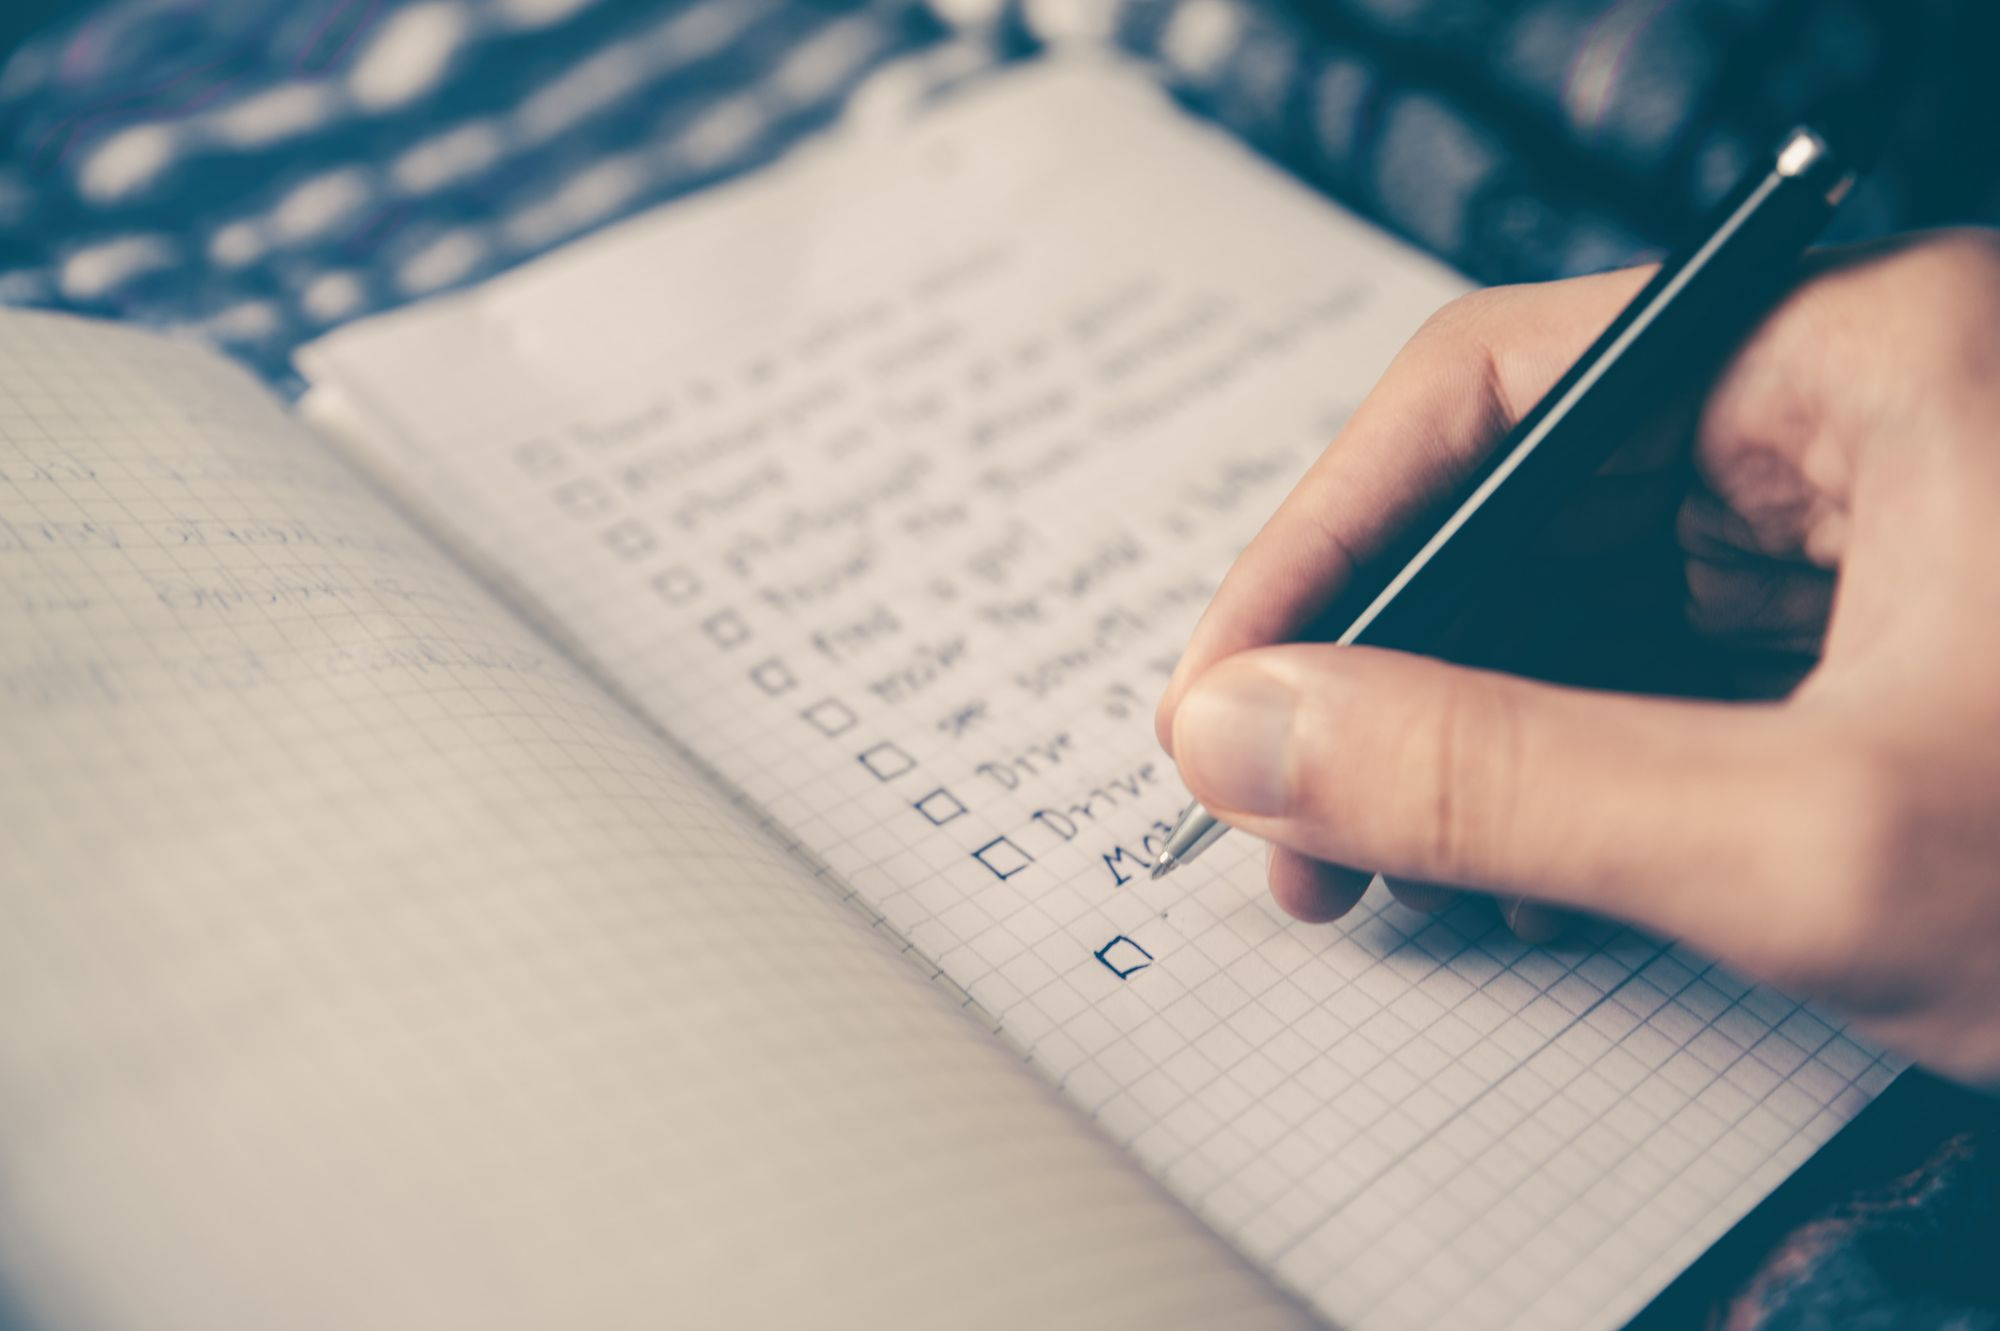 plan your day and do a to-do list